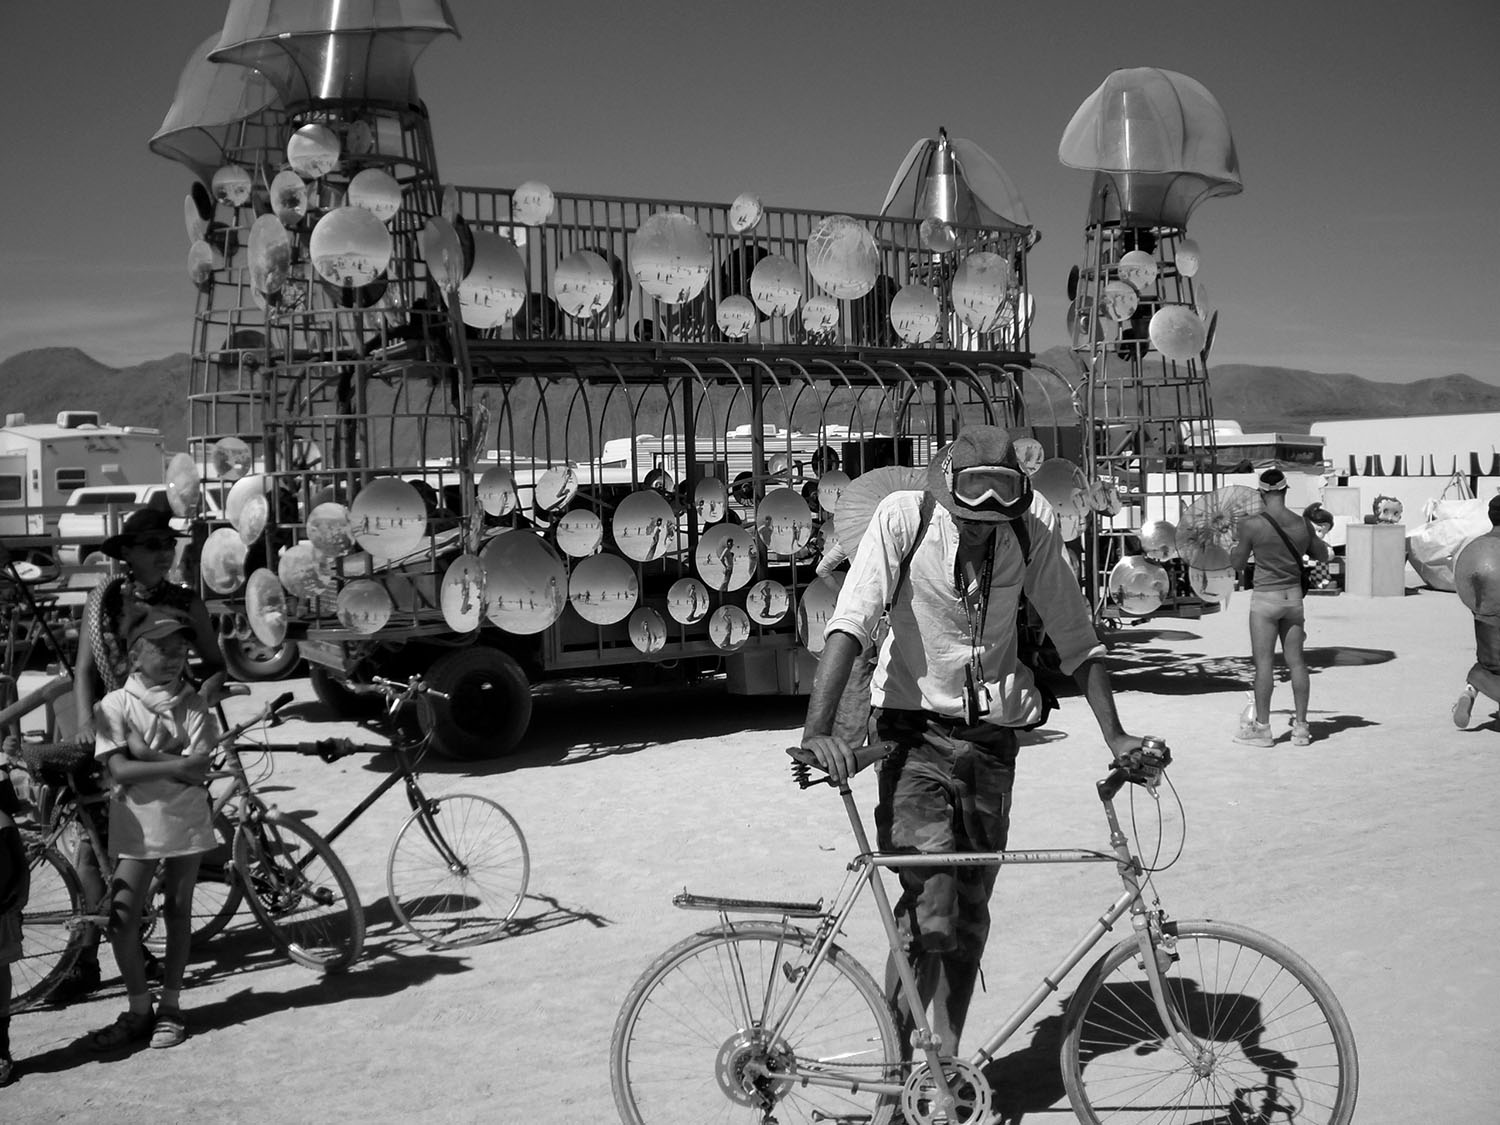 Me @ Burning Man, 2005